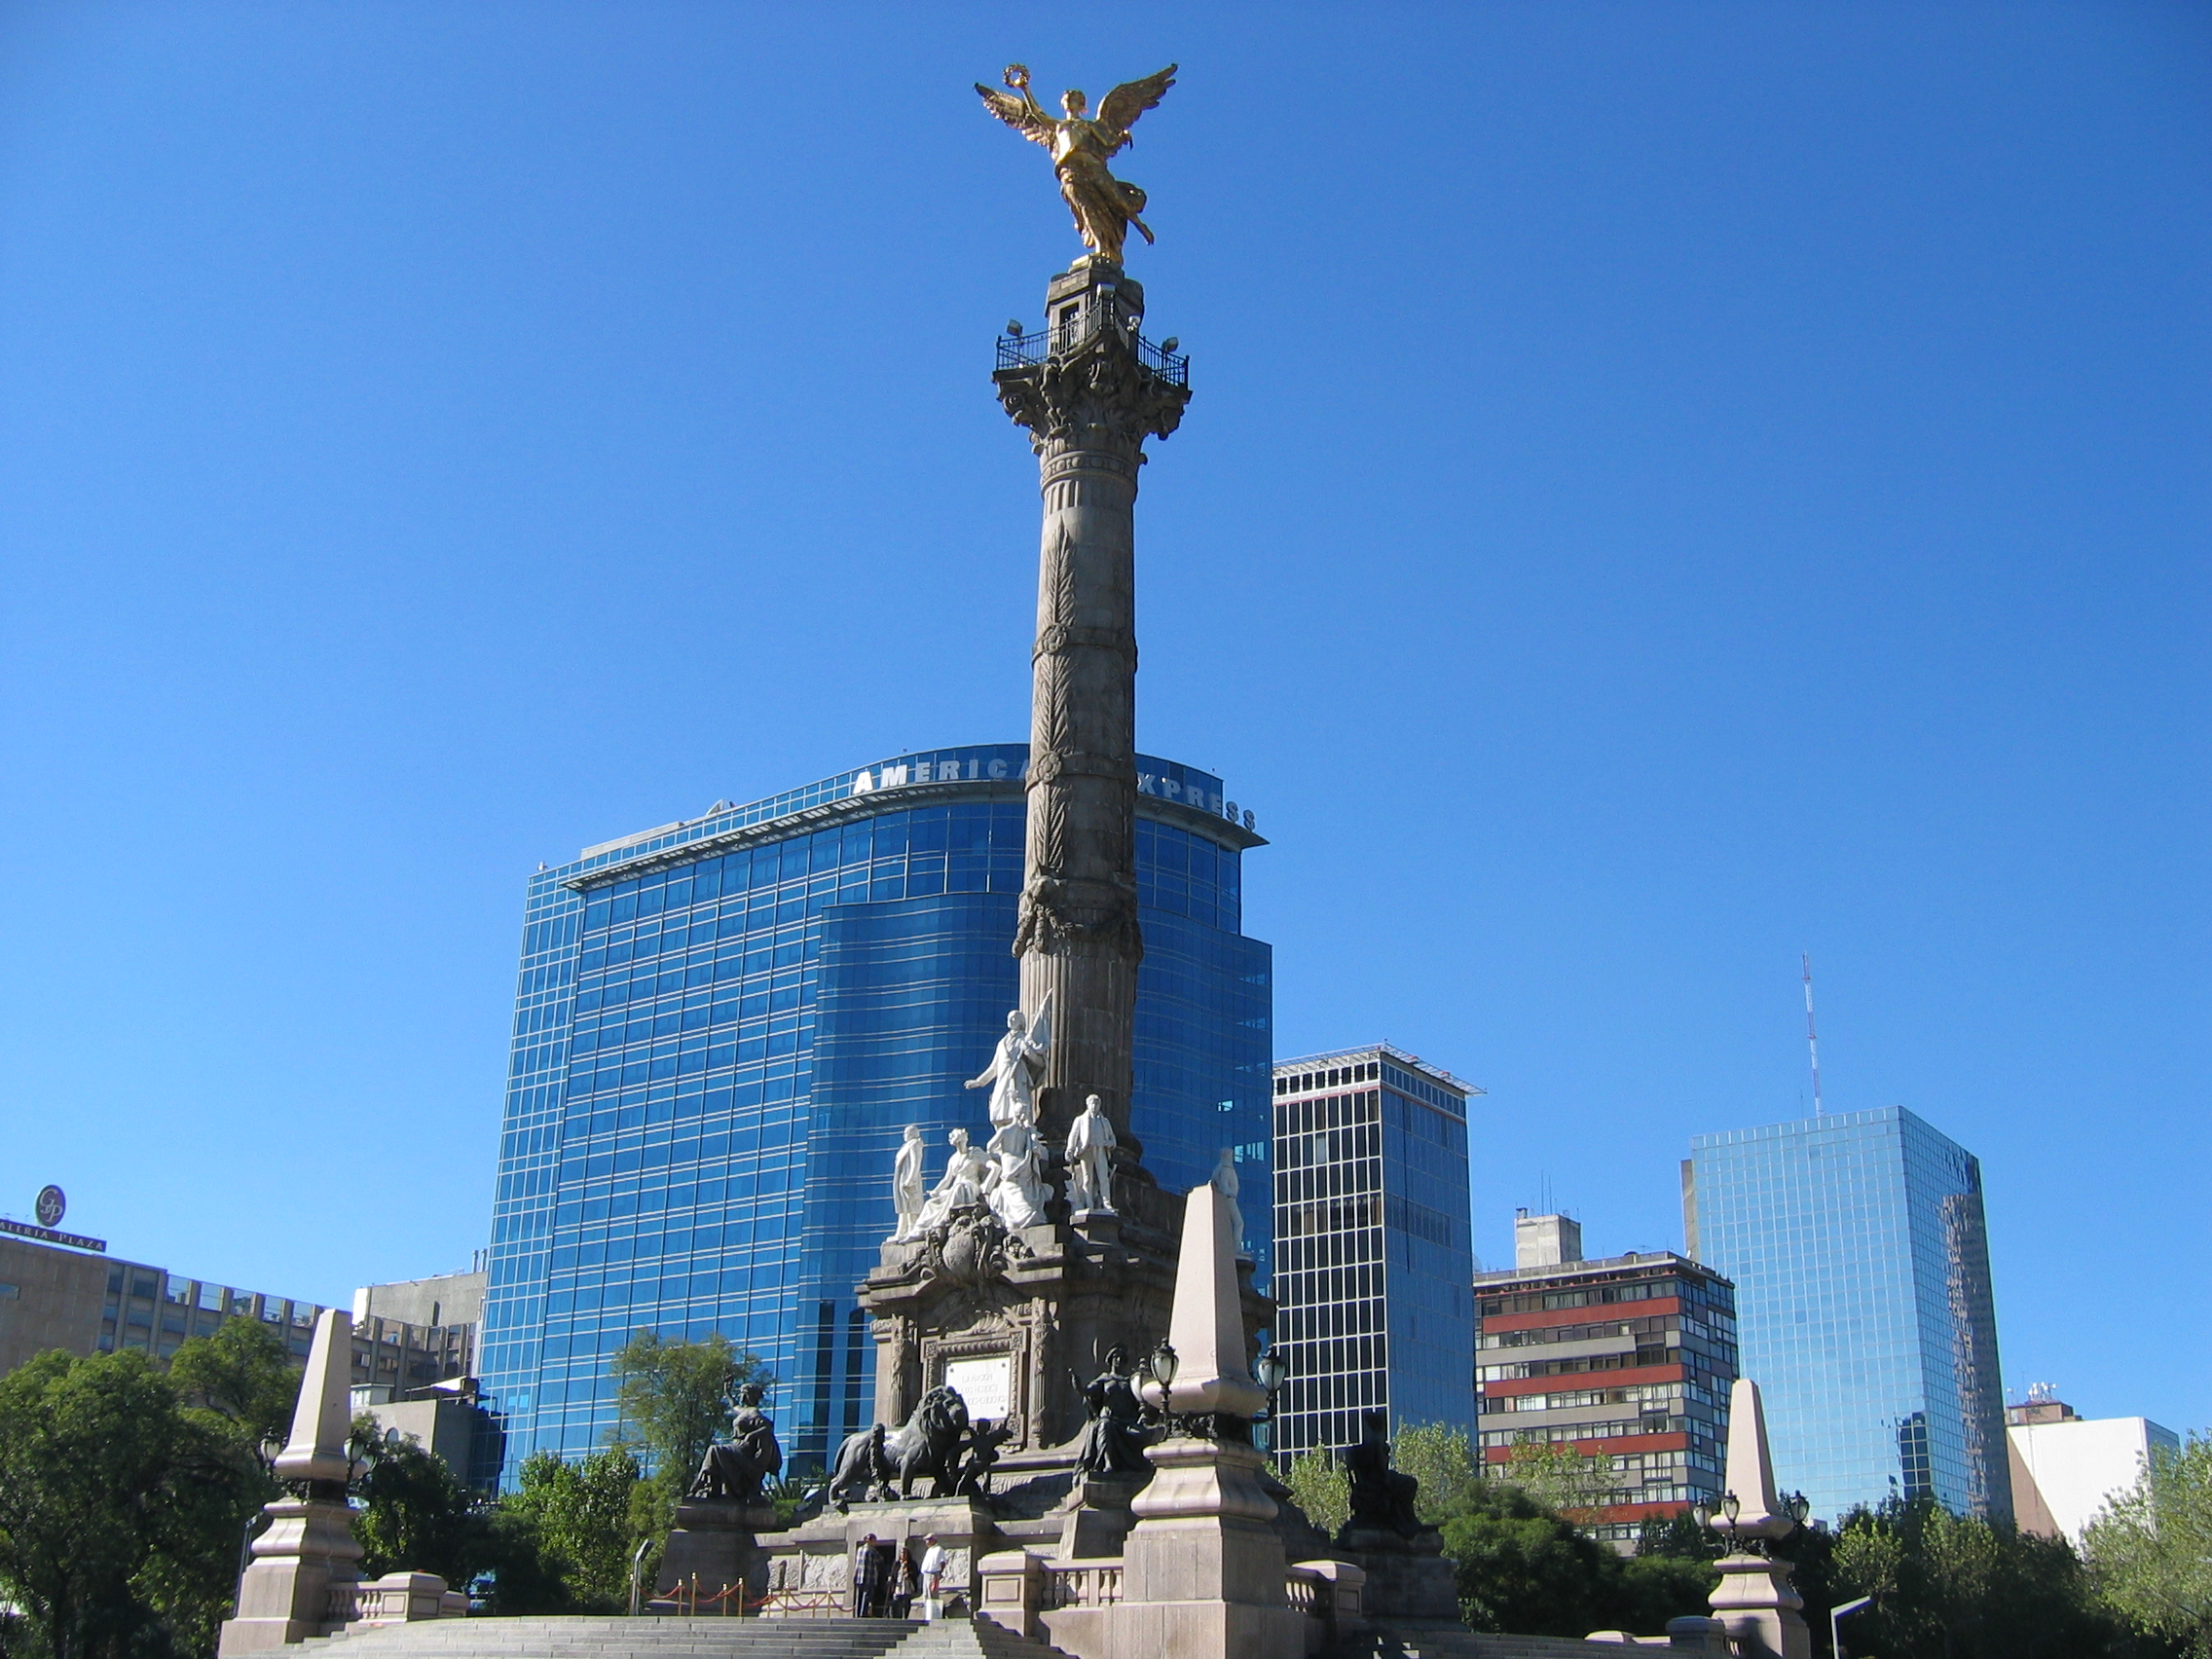 Mexico citys 12 must see landmarks for first timers ngel de la independencia omarflickr sciox Gallery